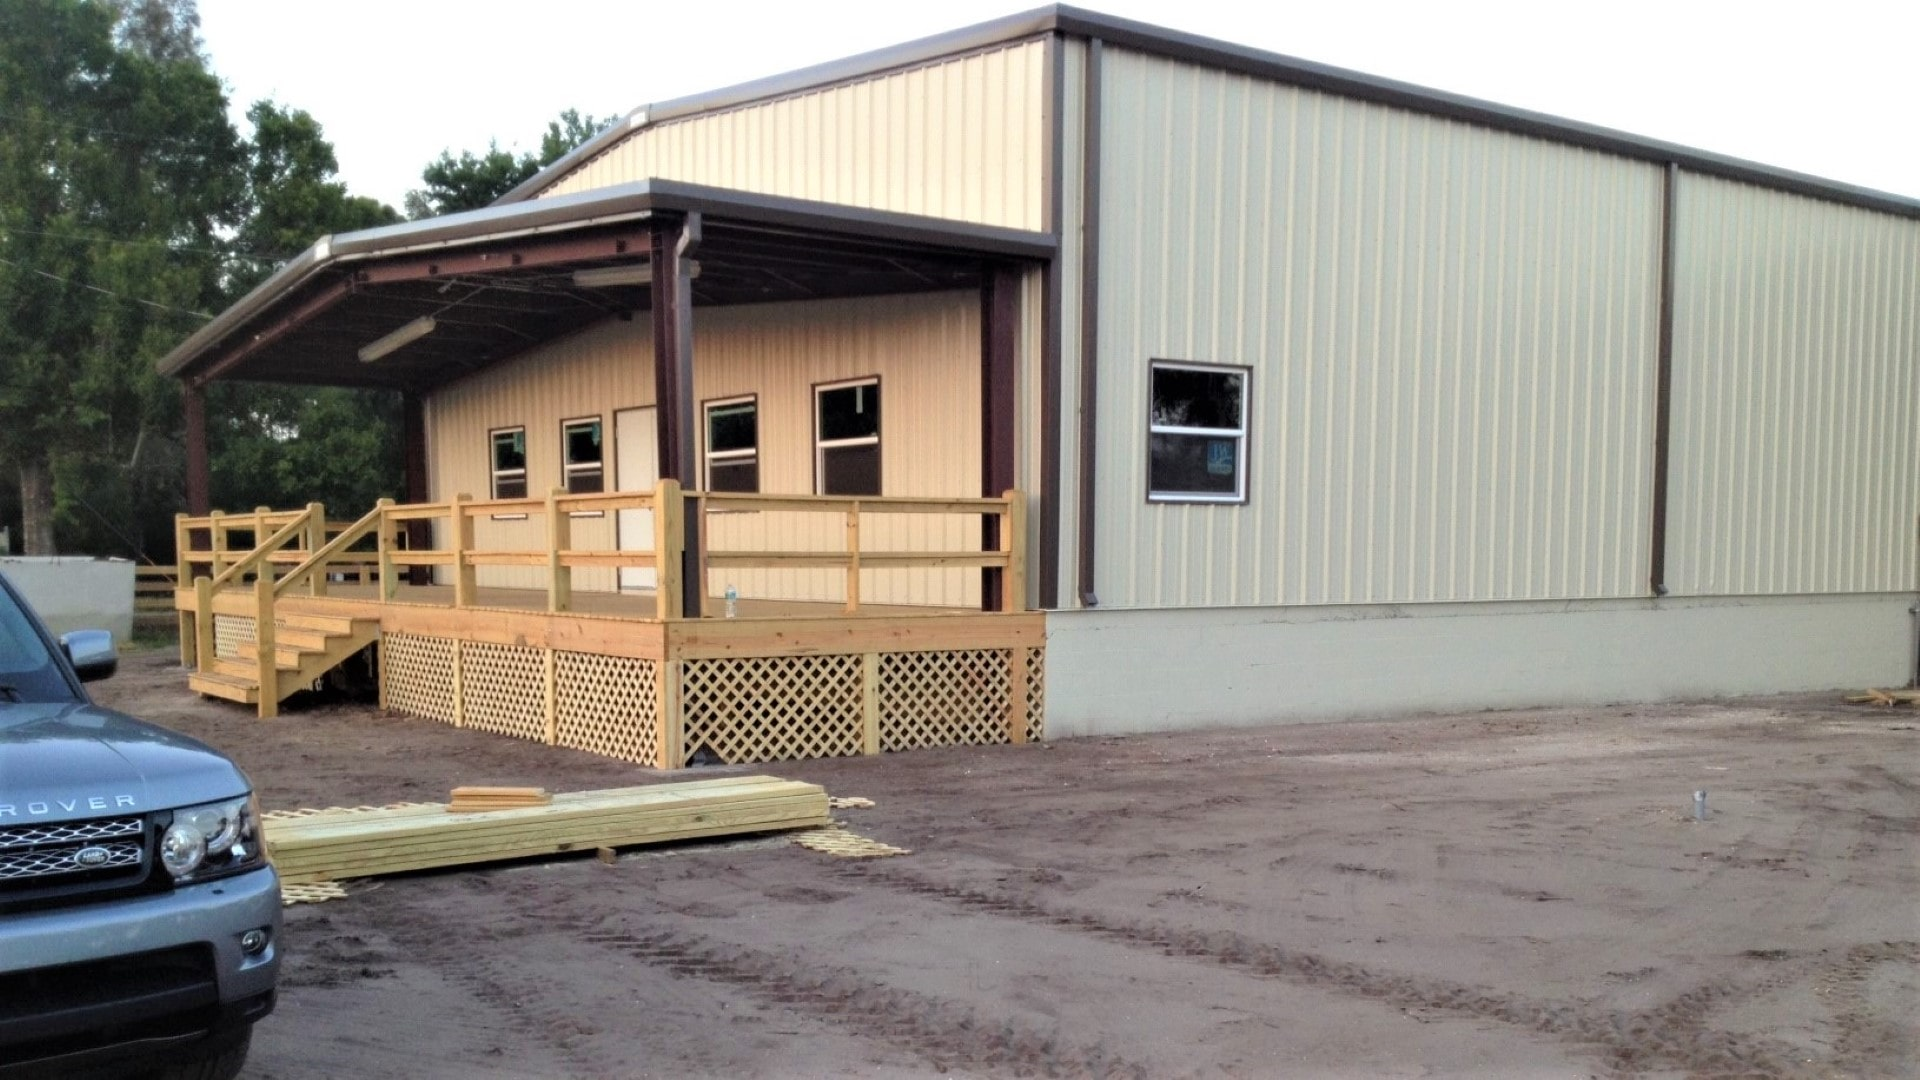 Saddle tan metal building with brown trim, covered entrance to offices on gable end and covered loading dock on sidewall.